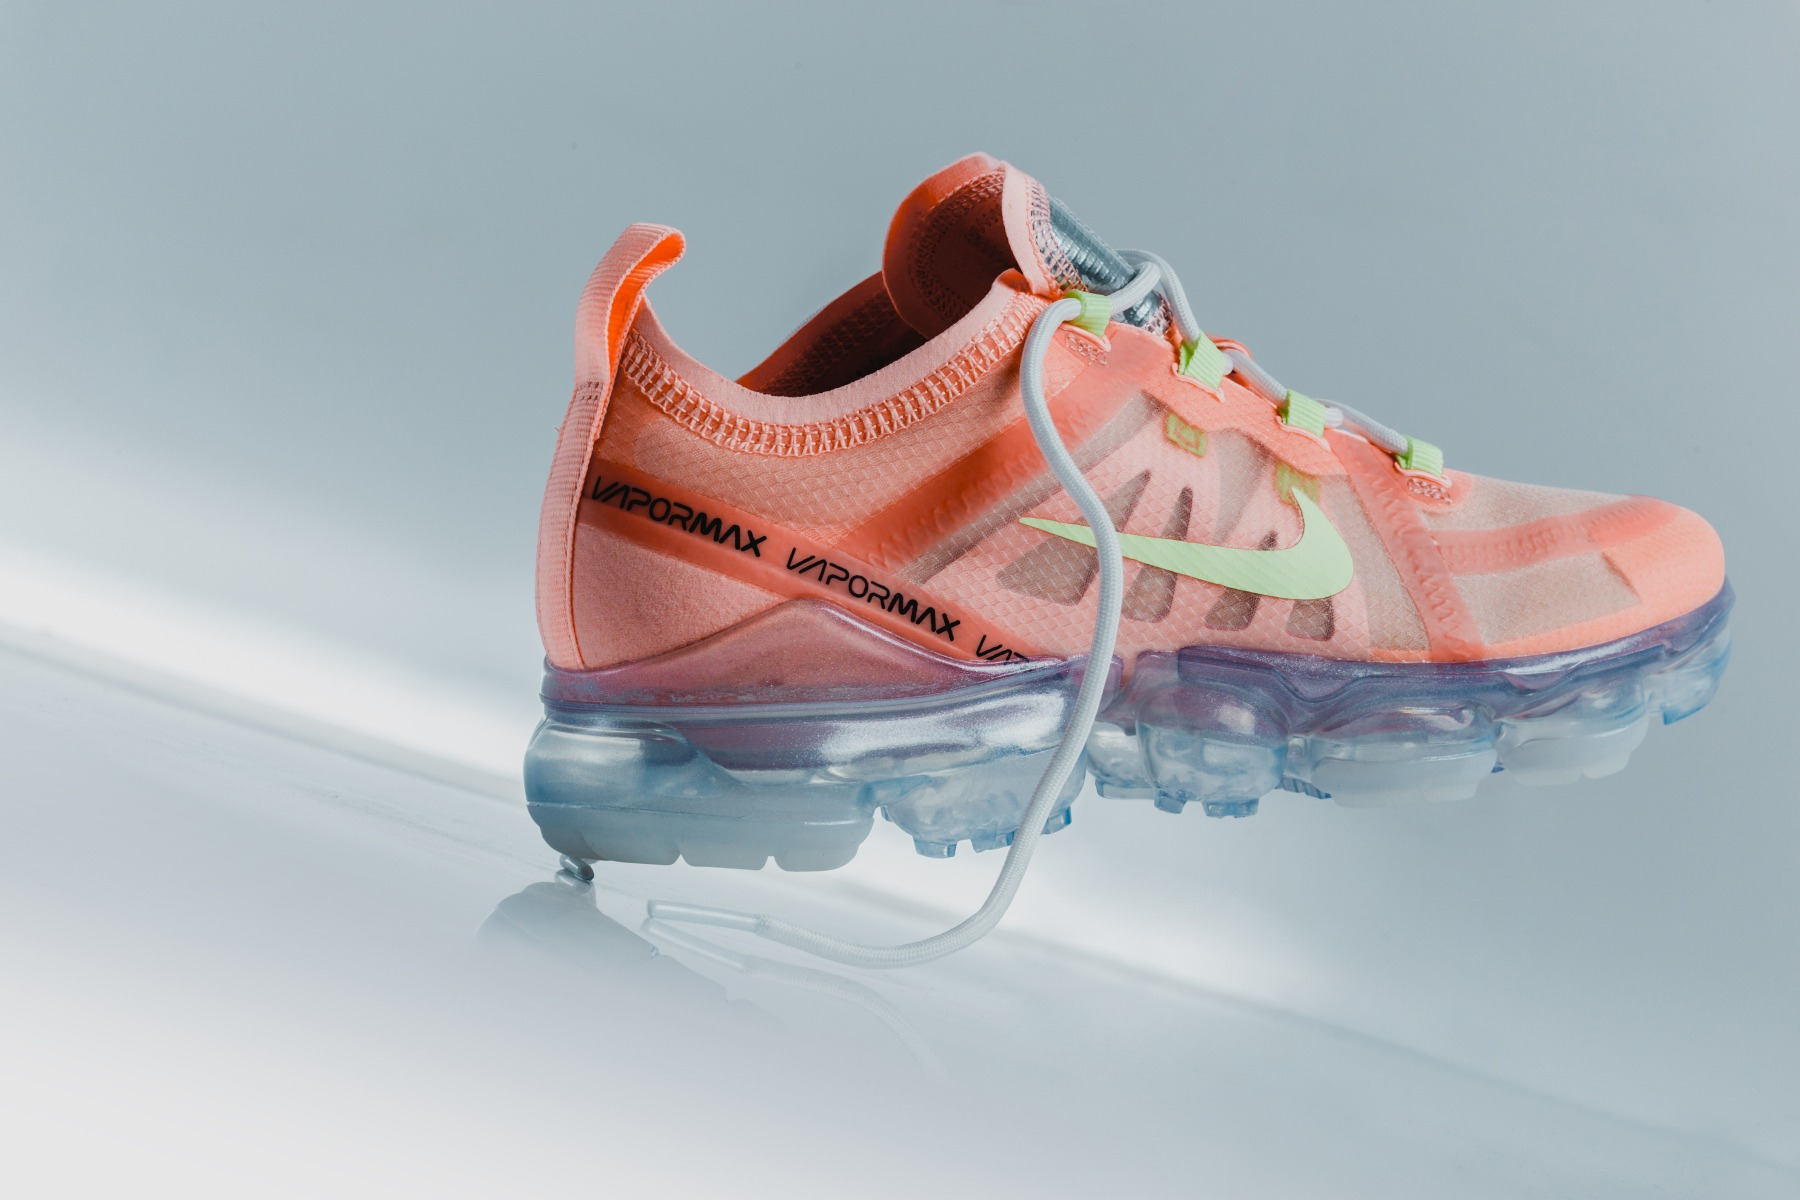 e51898d22933 The 2019 edition of the Nike Air VaporMax 2019 has a warm mellow feel for  its latest release. Produced in women sizes